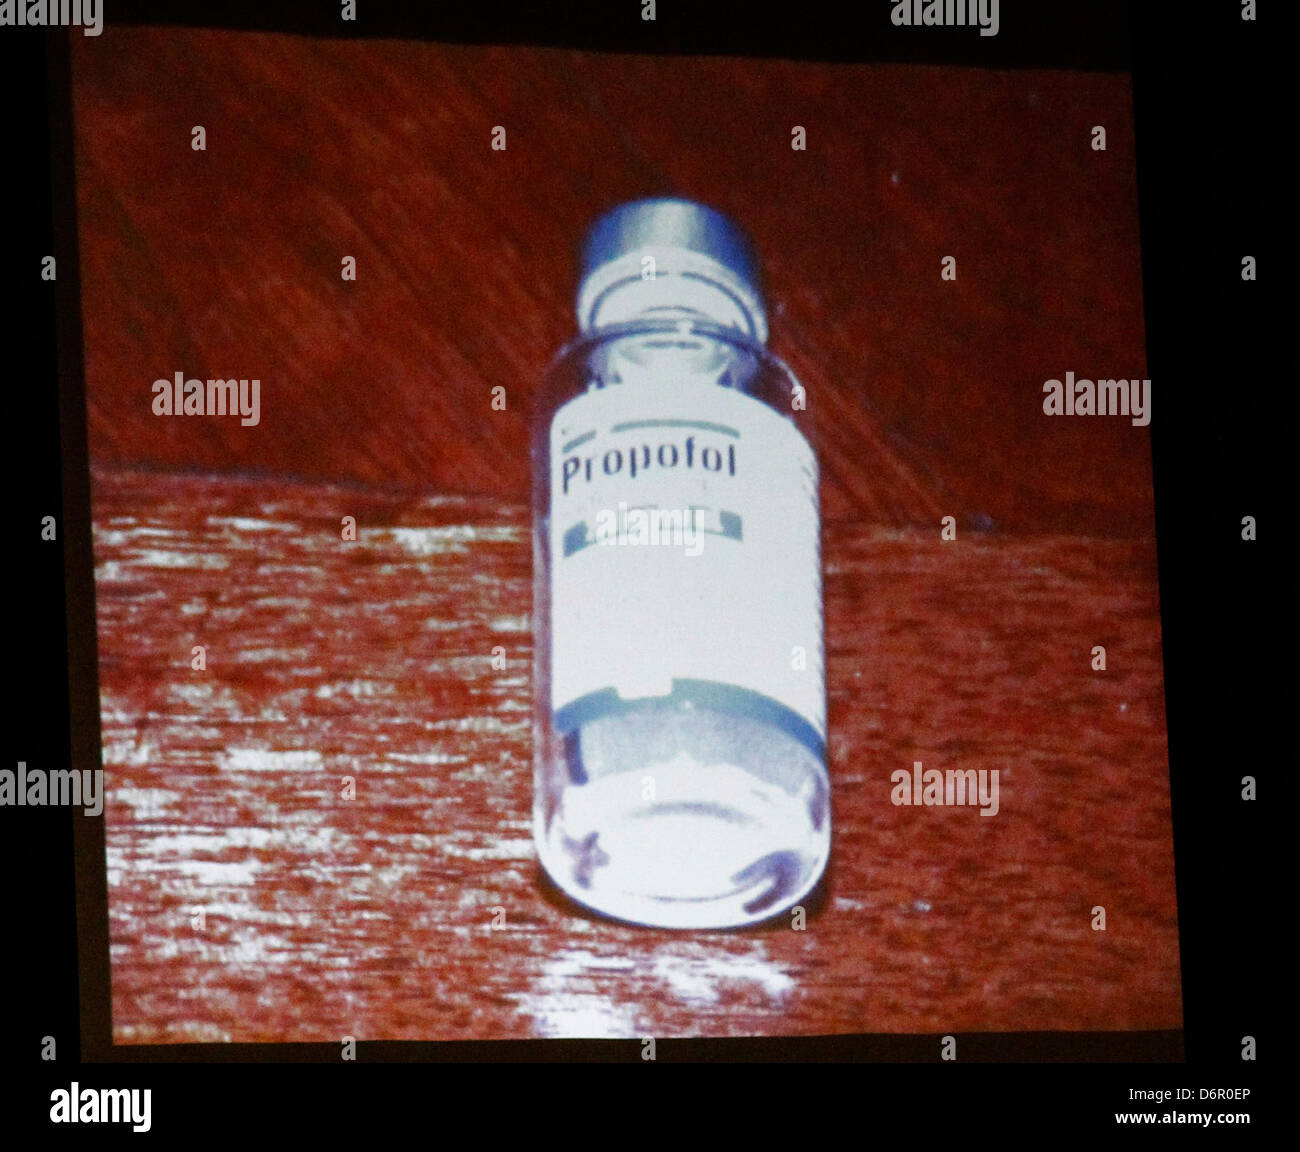 A bottle of propofol lies under a side table found in the bedroom of pop star Michael Jackson in this photo projected - Stock Image